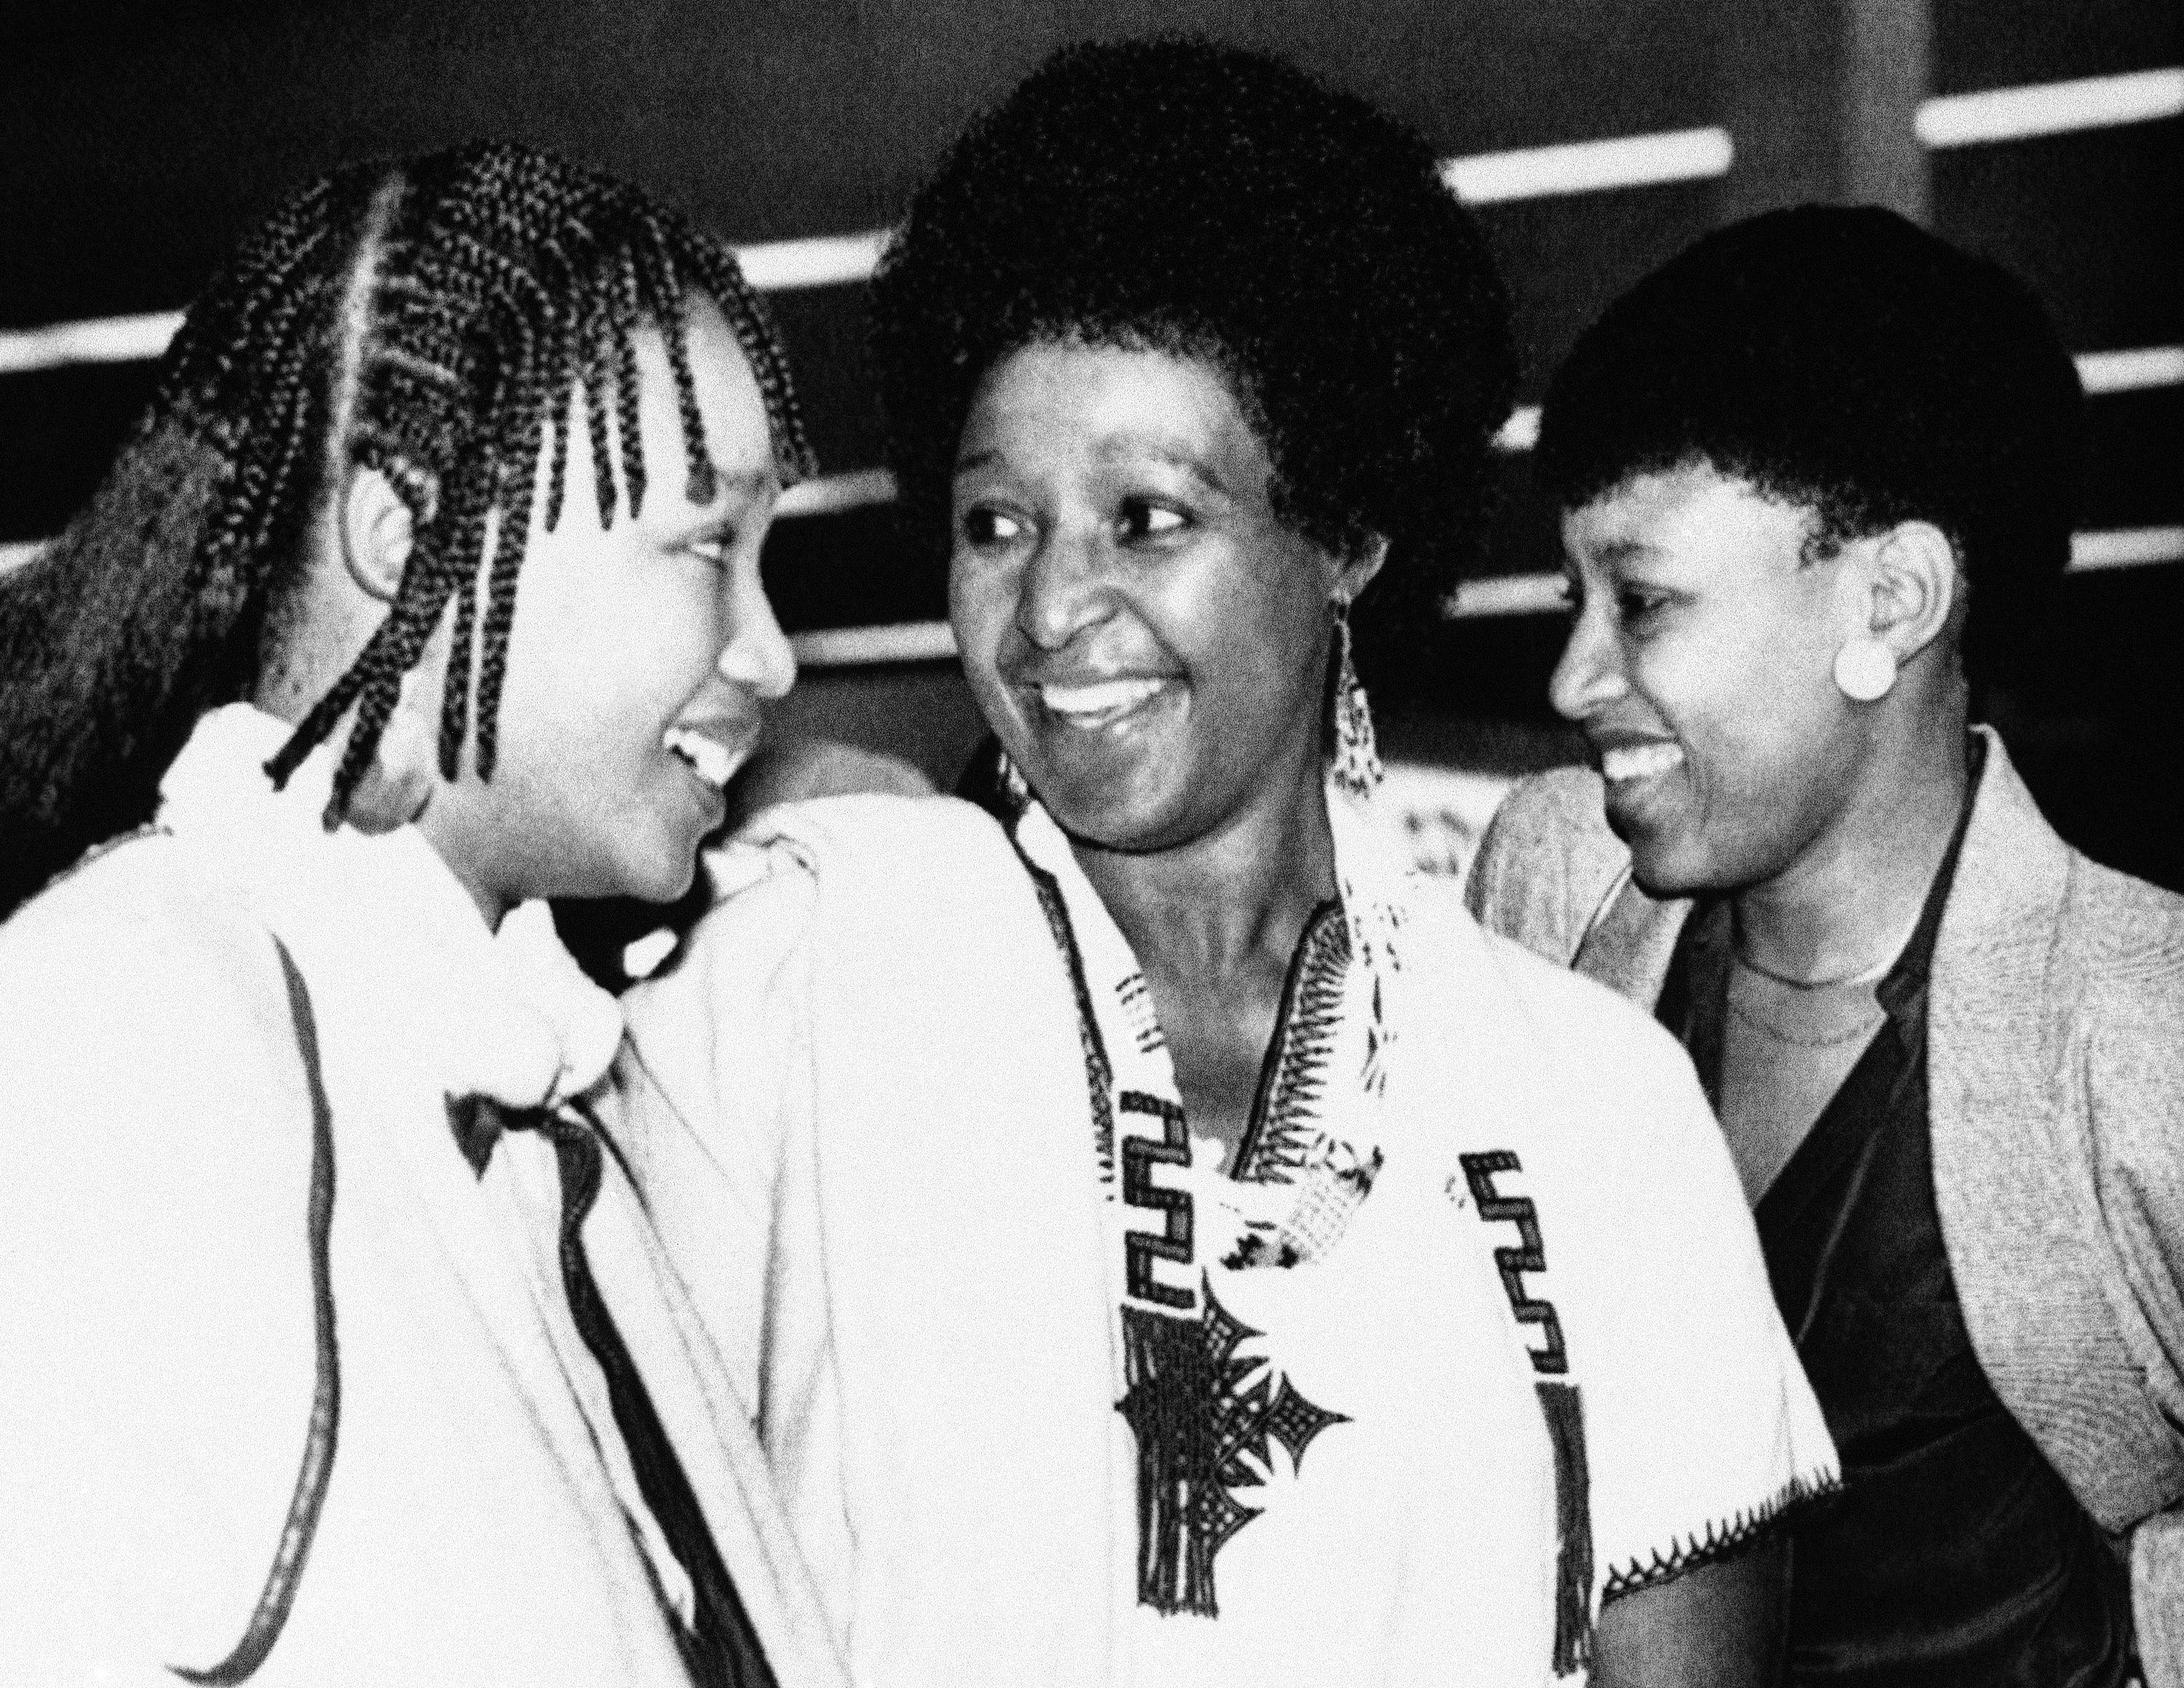 <p>Winnie Mandela, with daughters Dlamini, left, and Zinzi, right, arrives at Cape Town's airport on Sept. 11, 1985, on her way to visit her imprisoned husband, anti-apartheid activist Nelson Mandela. (Photo: Greg English/AP) </p>